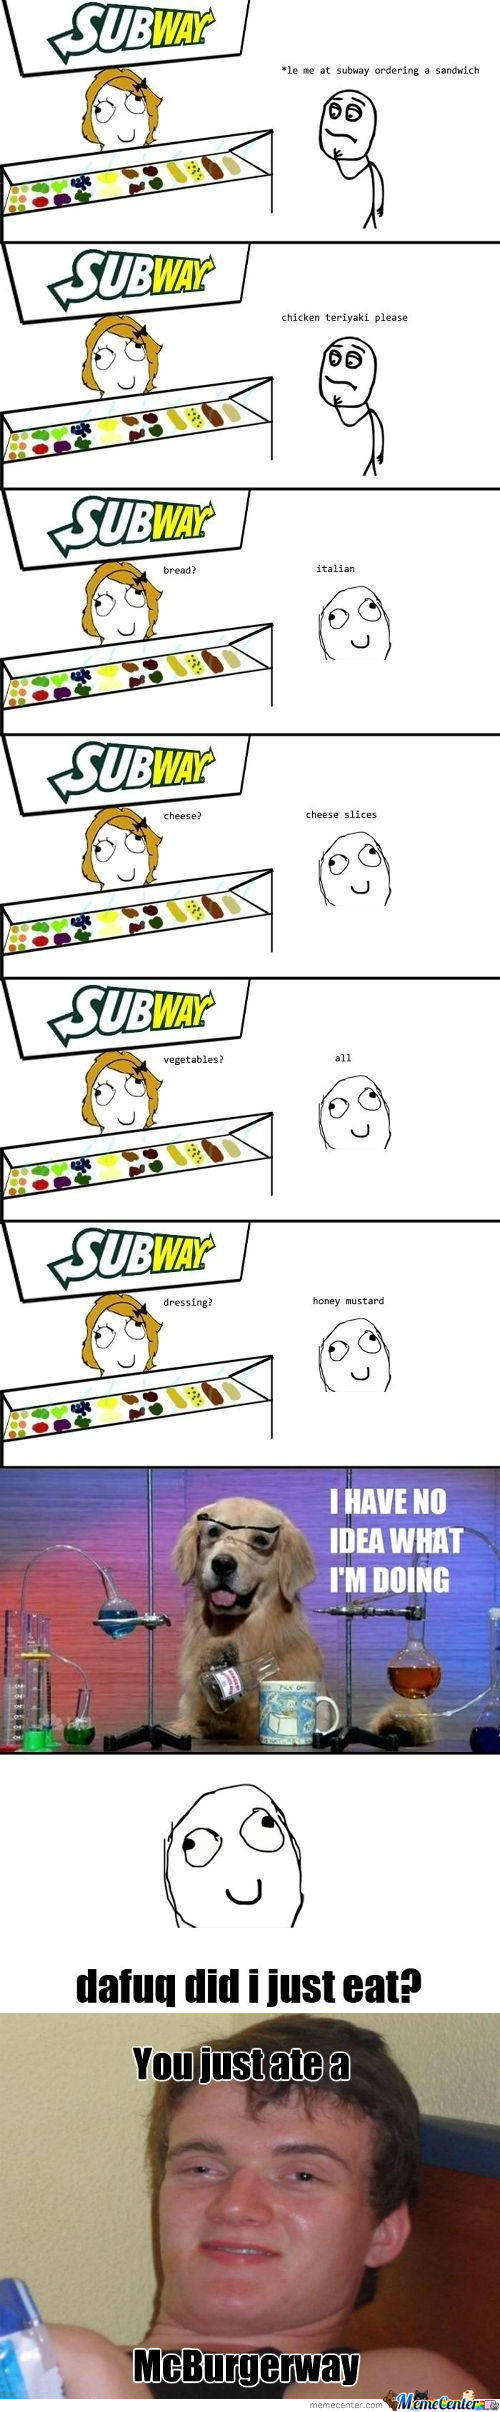 [RMX] Srsly, Every Time At Subway.